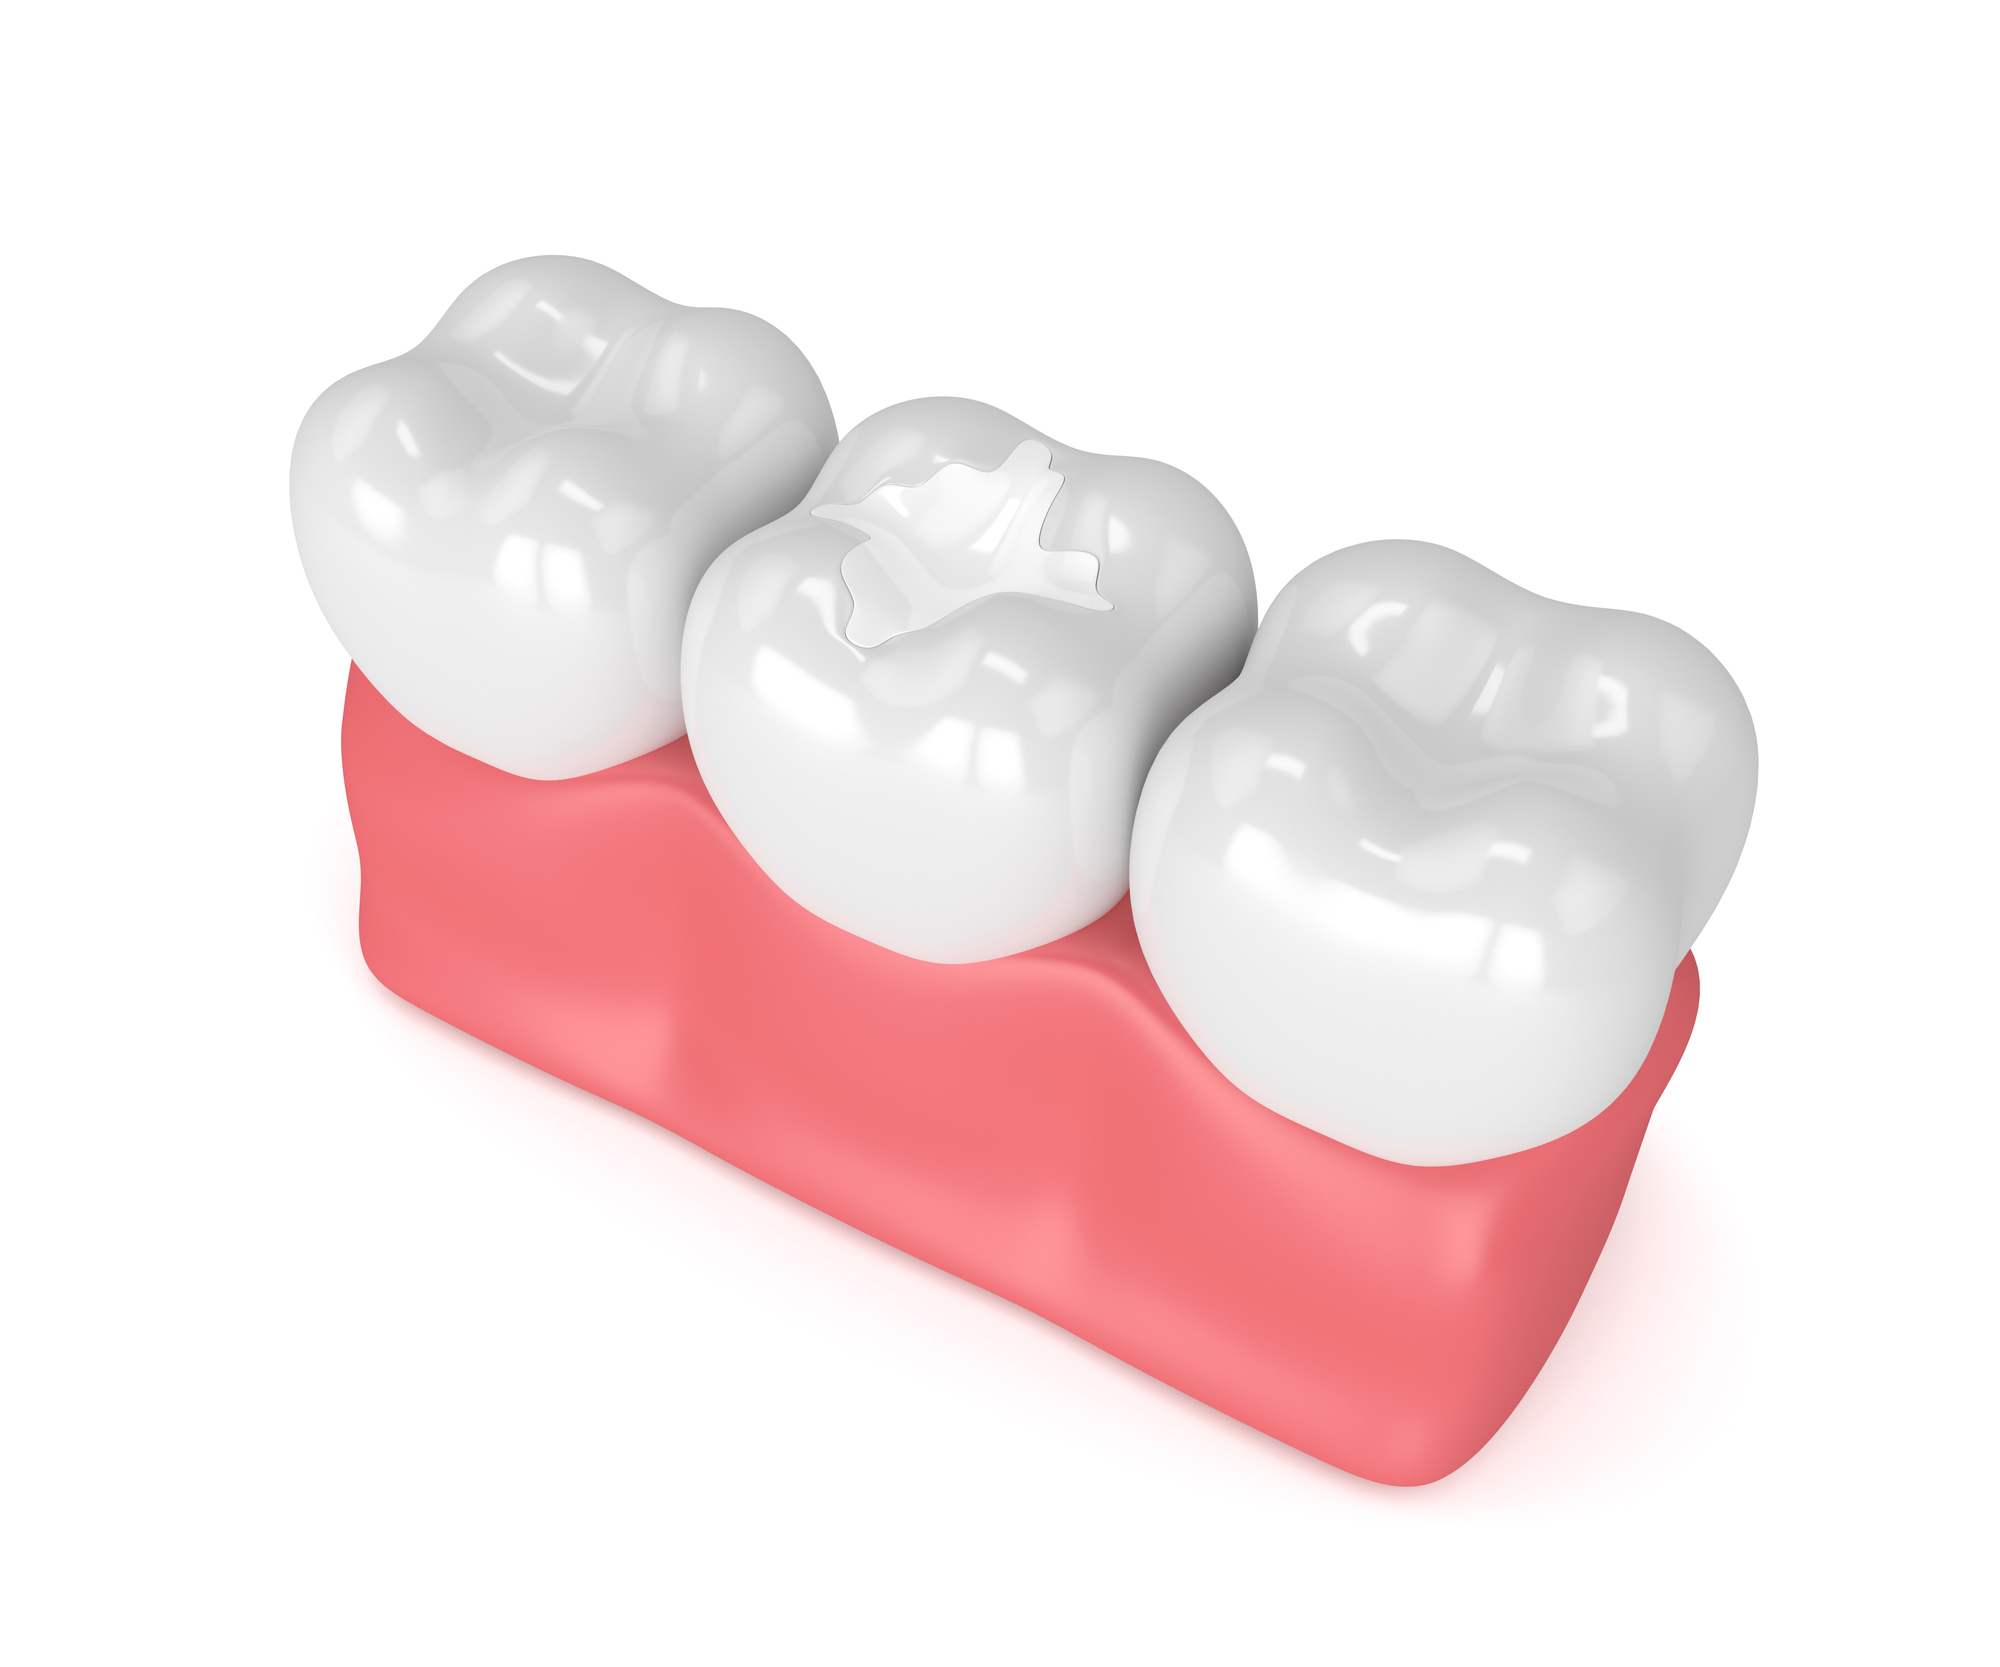 Where can I find an emergency dentist west palm beach?